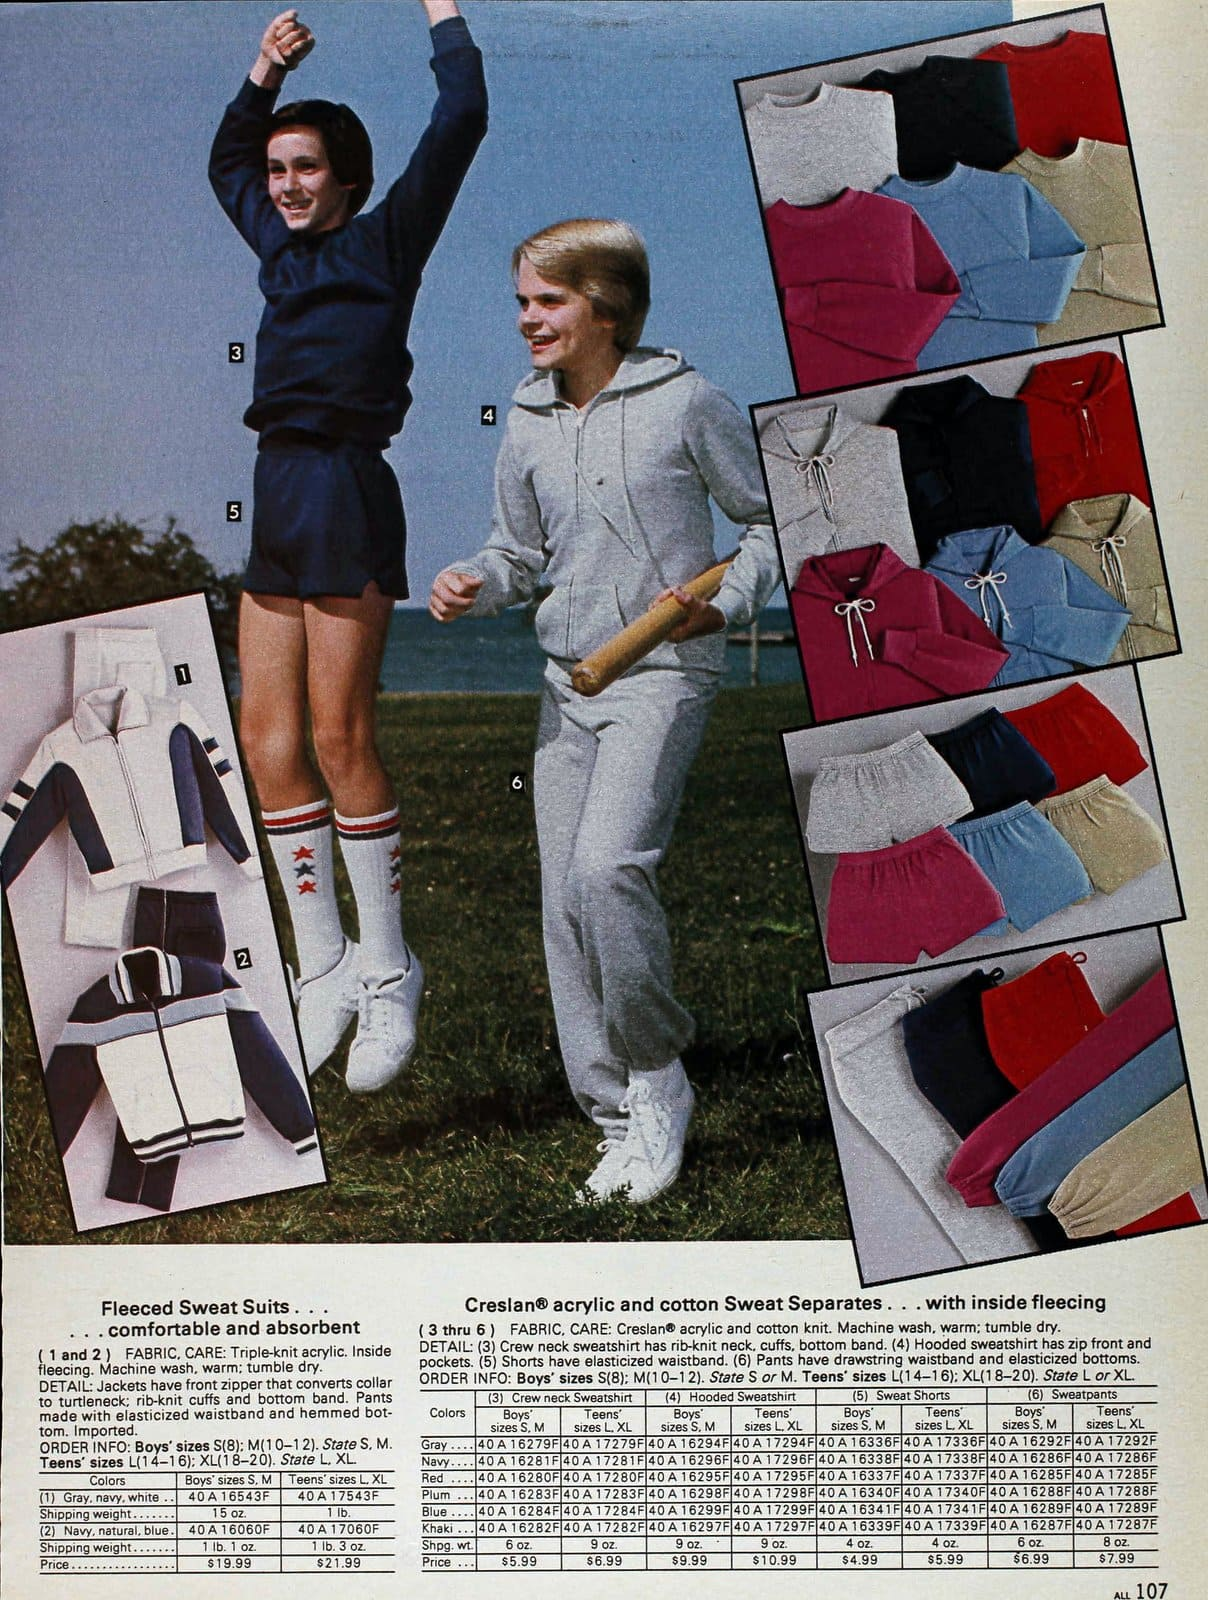 1980s menswear clothing from Sears 1983 (2)